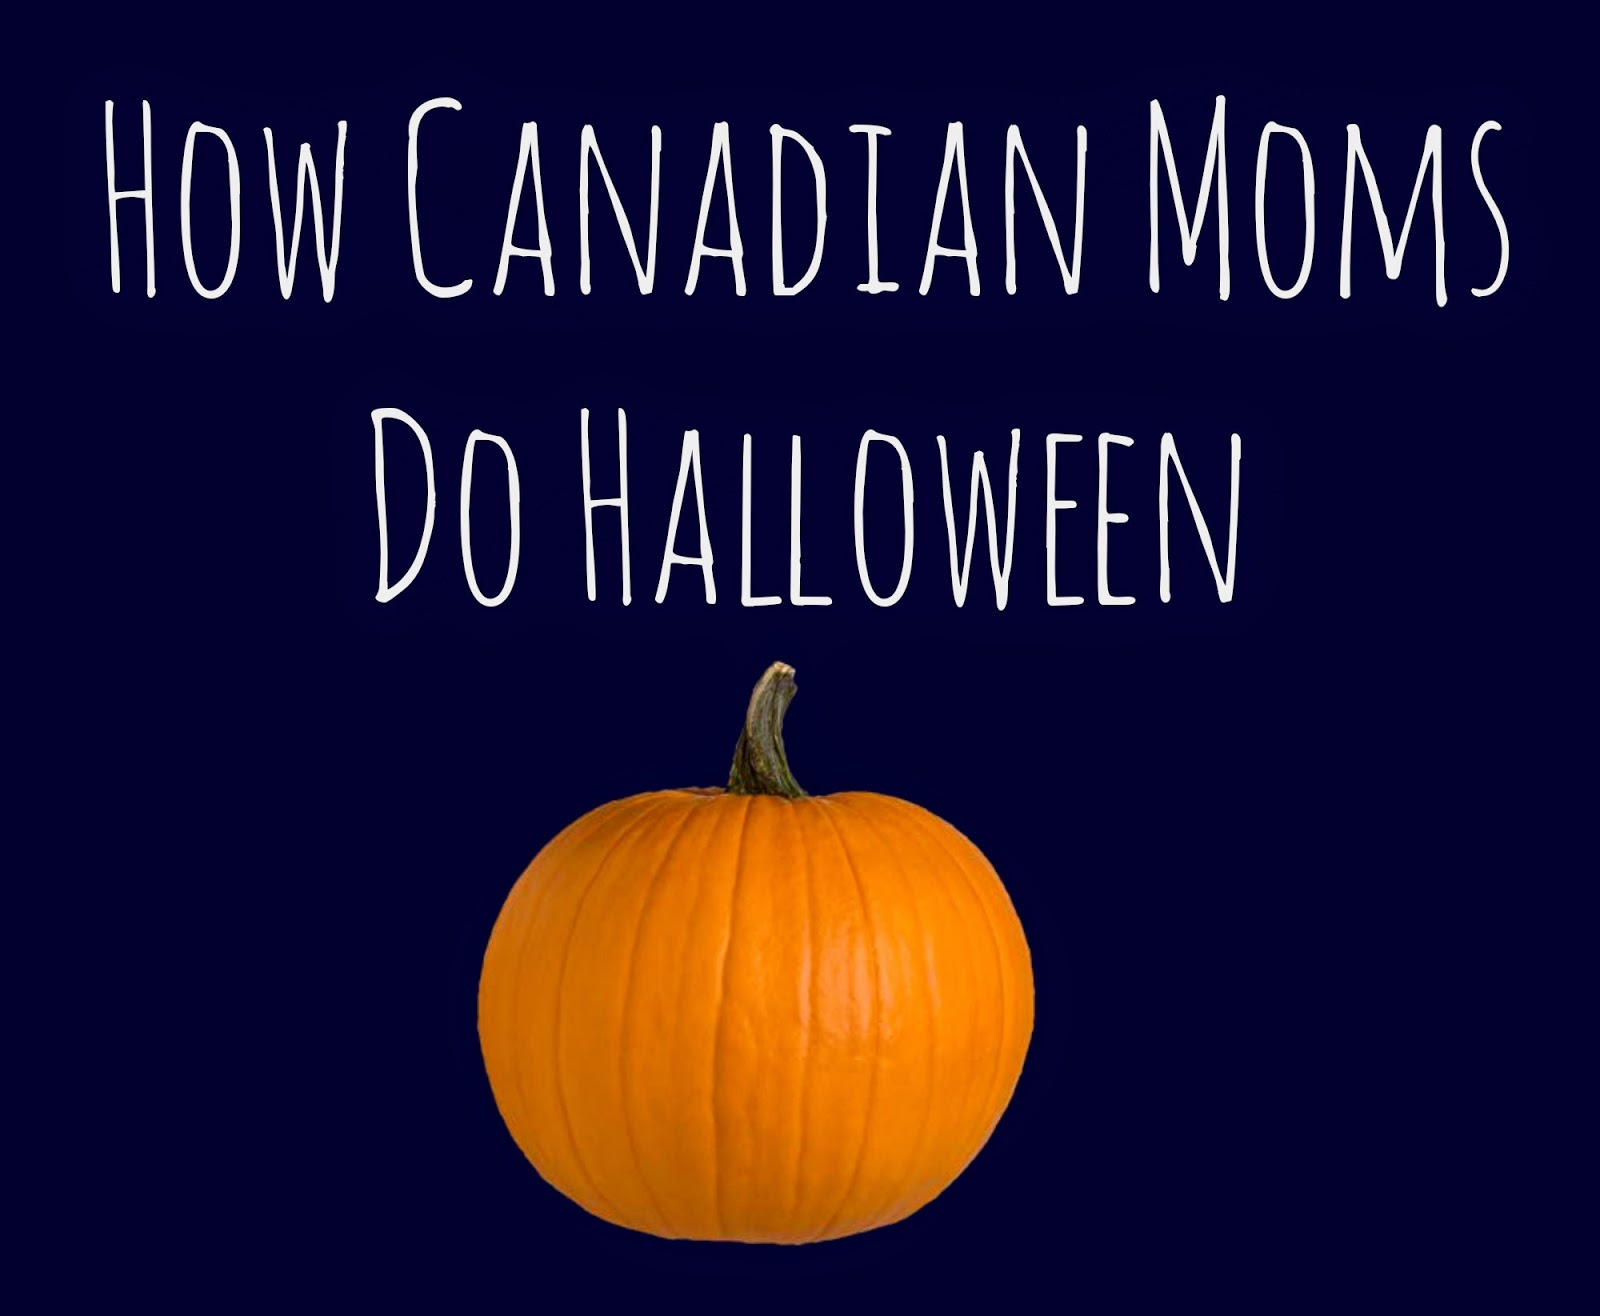 Toddler Halloween, Halloween Candy, Mom Halloween, Canadian Halloween,Halloween DIY Costume, Halloween Craft, Pumpkin Patch, Halloween goo, cool halloween, homemade halloween, halloween humor, funny halloween, boo juice, canadian mom, canadian blogger, blogger round up, halloween round up